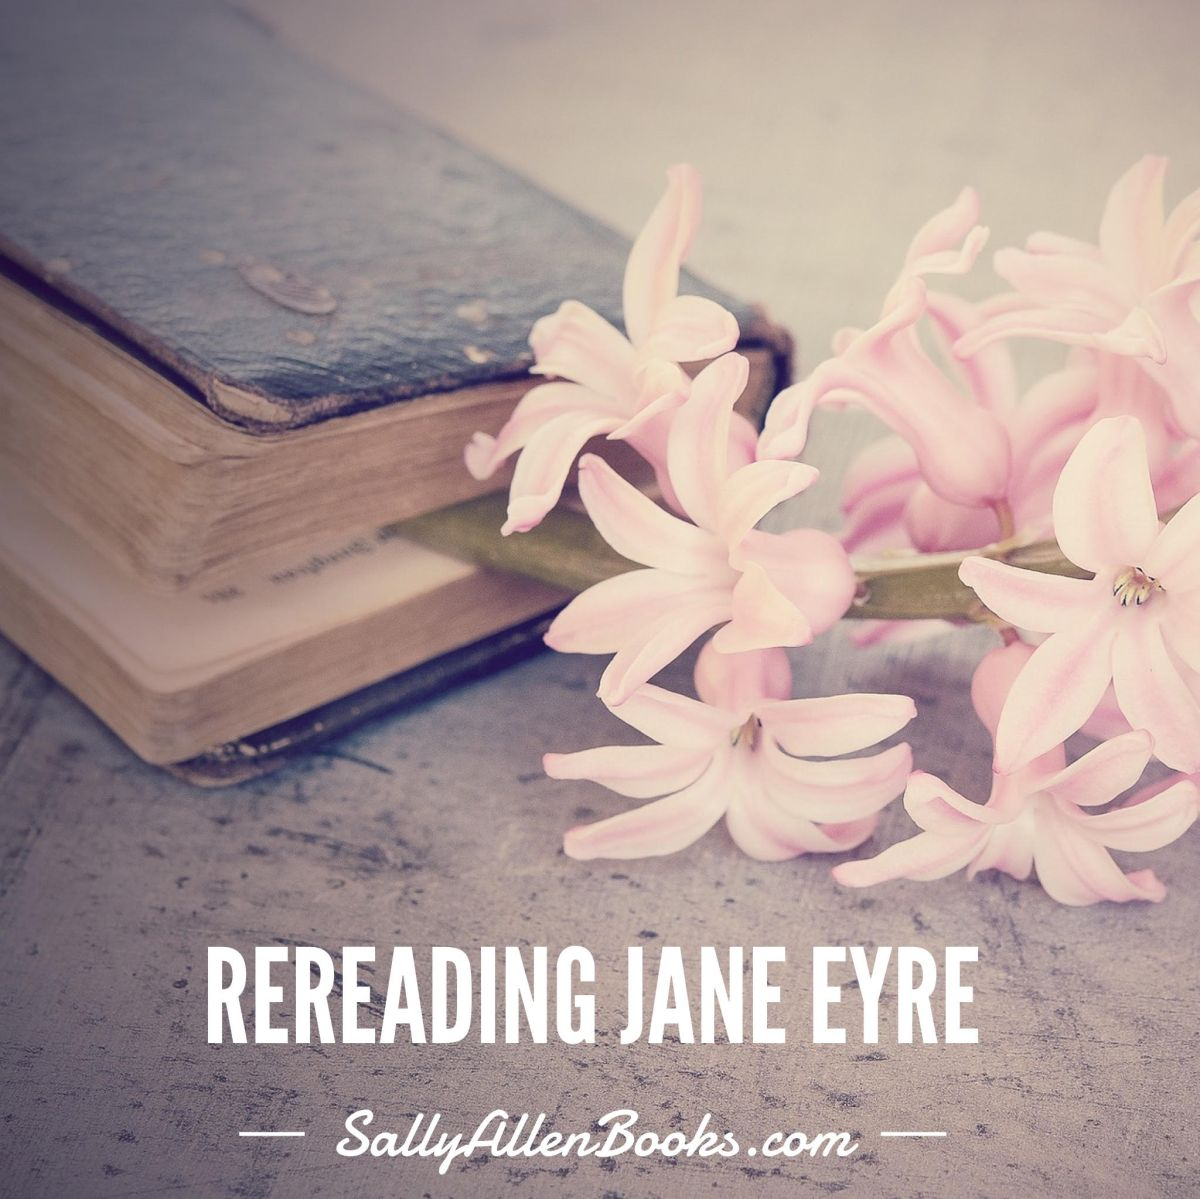 Rereading Jane Eyre: Why it's good to read books we don't *like*